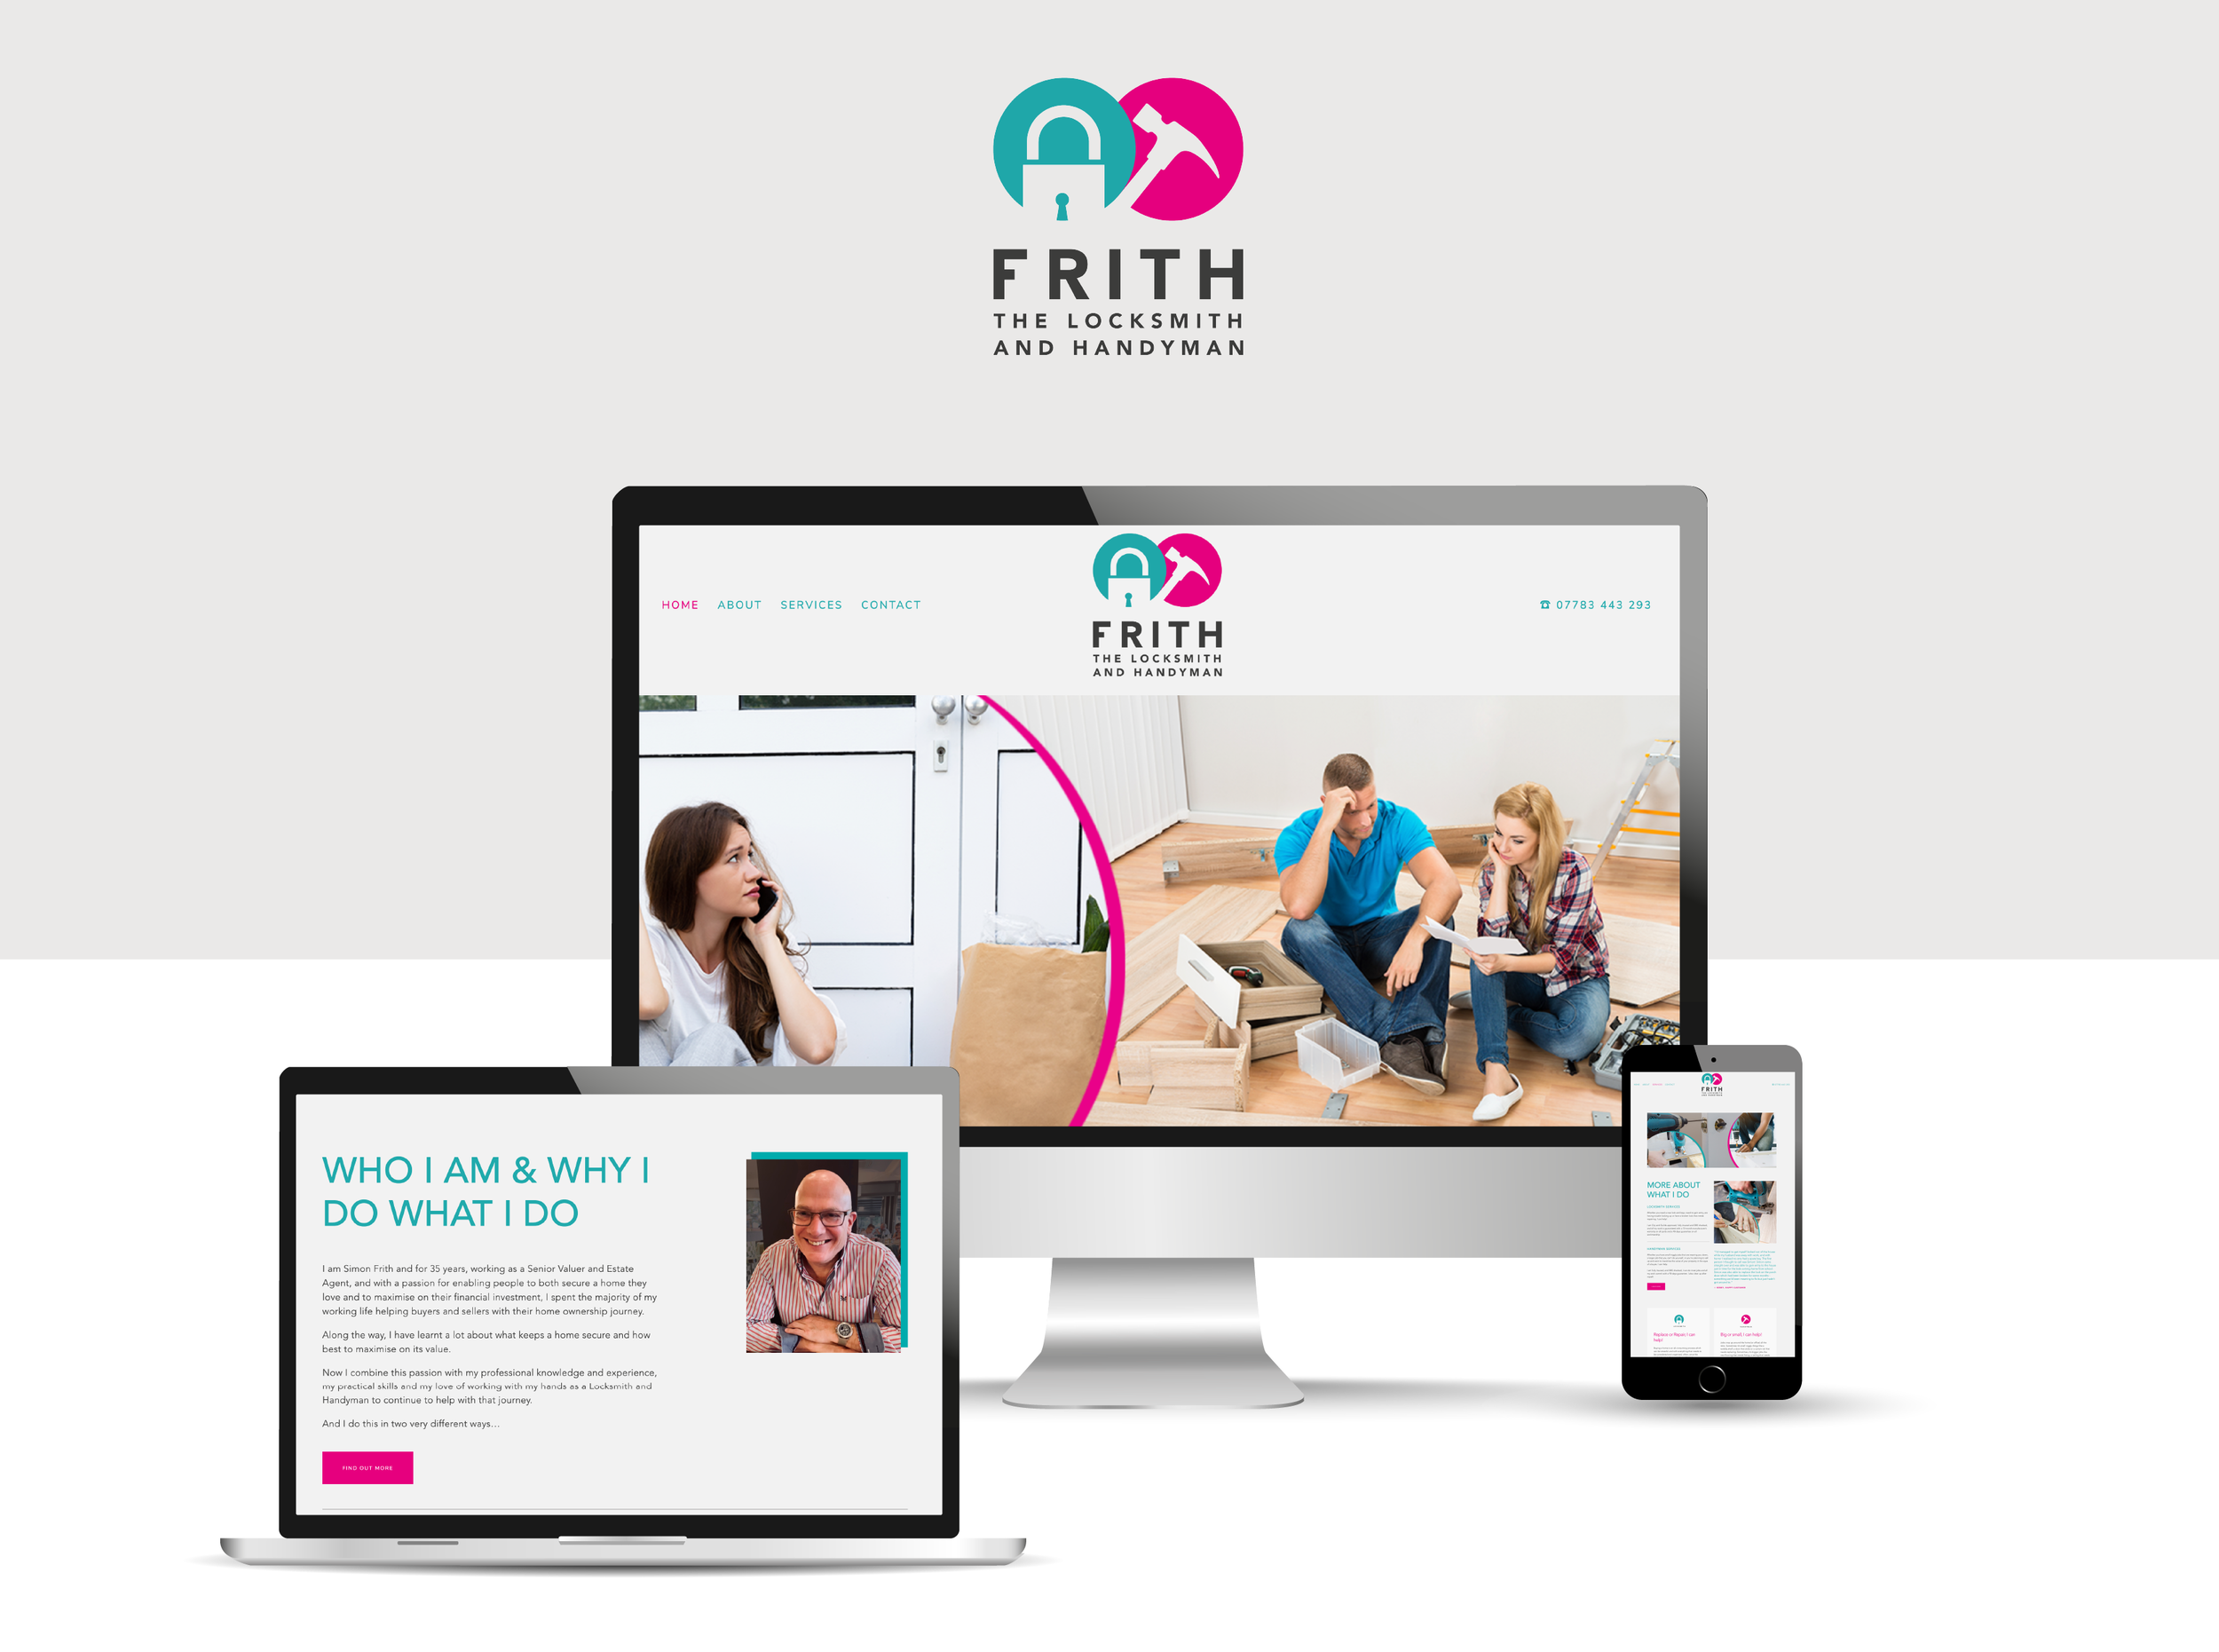 SEE THE WEBSITE IN ACTION - Click below to see how this template becomes a personalised website